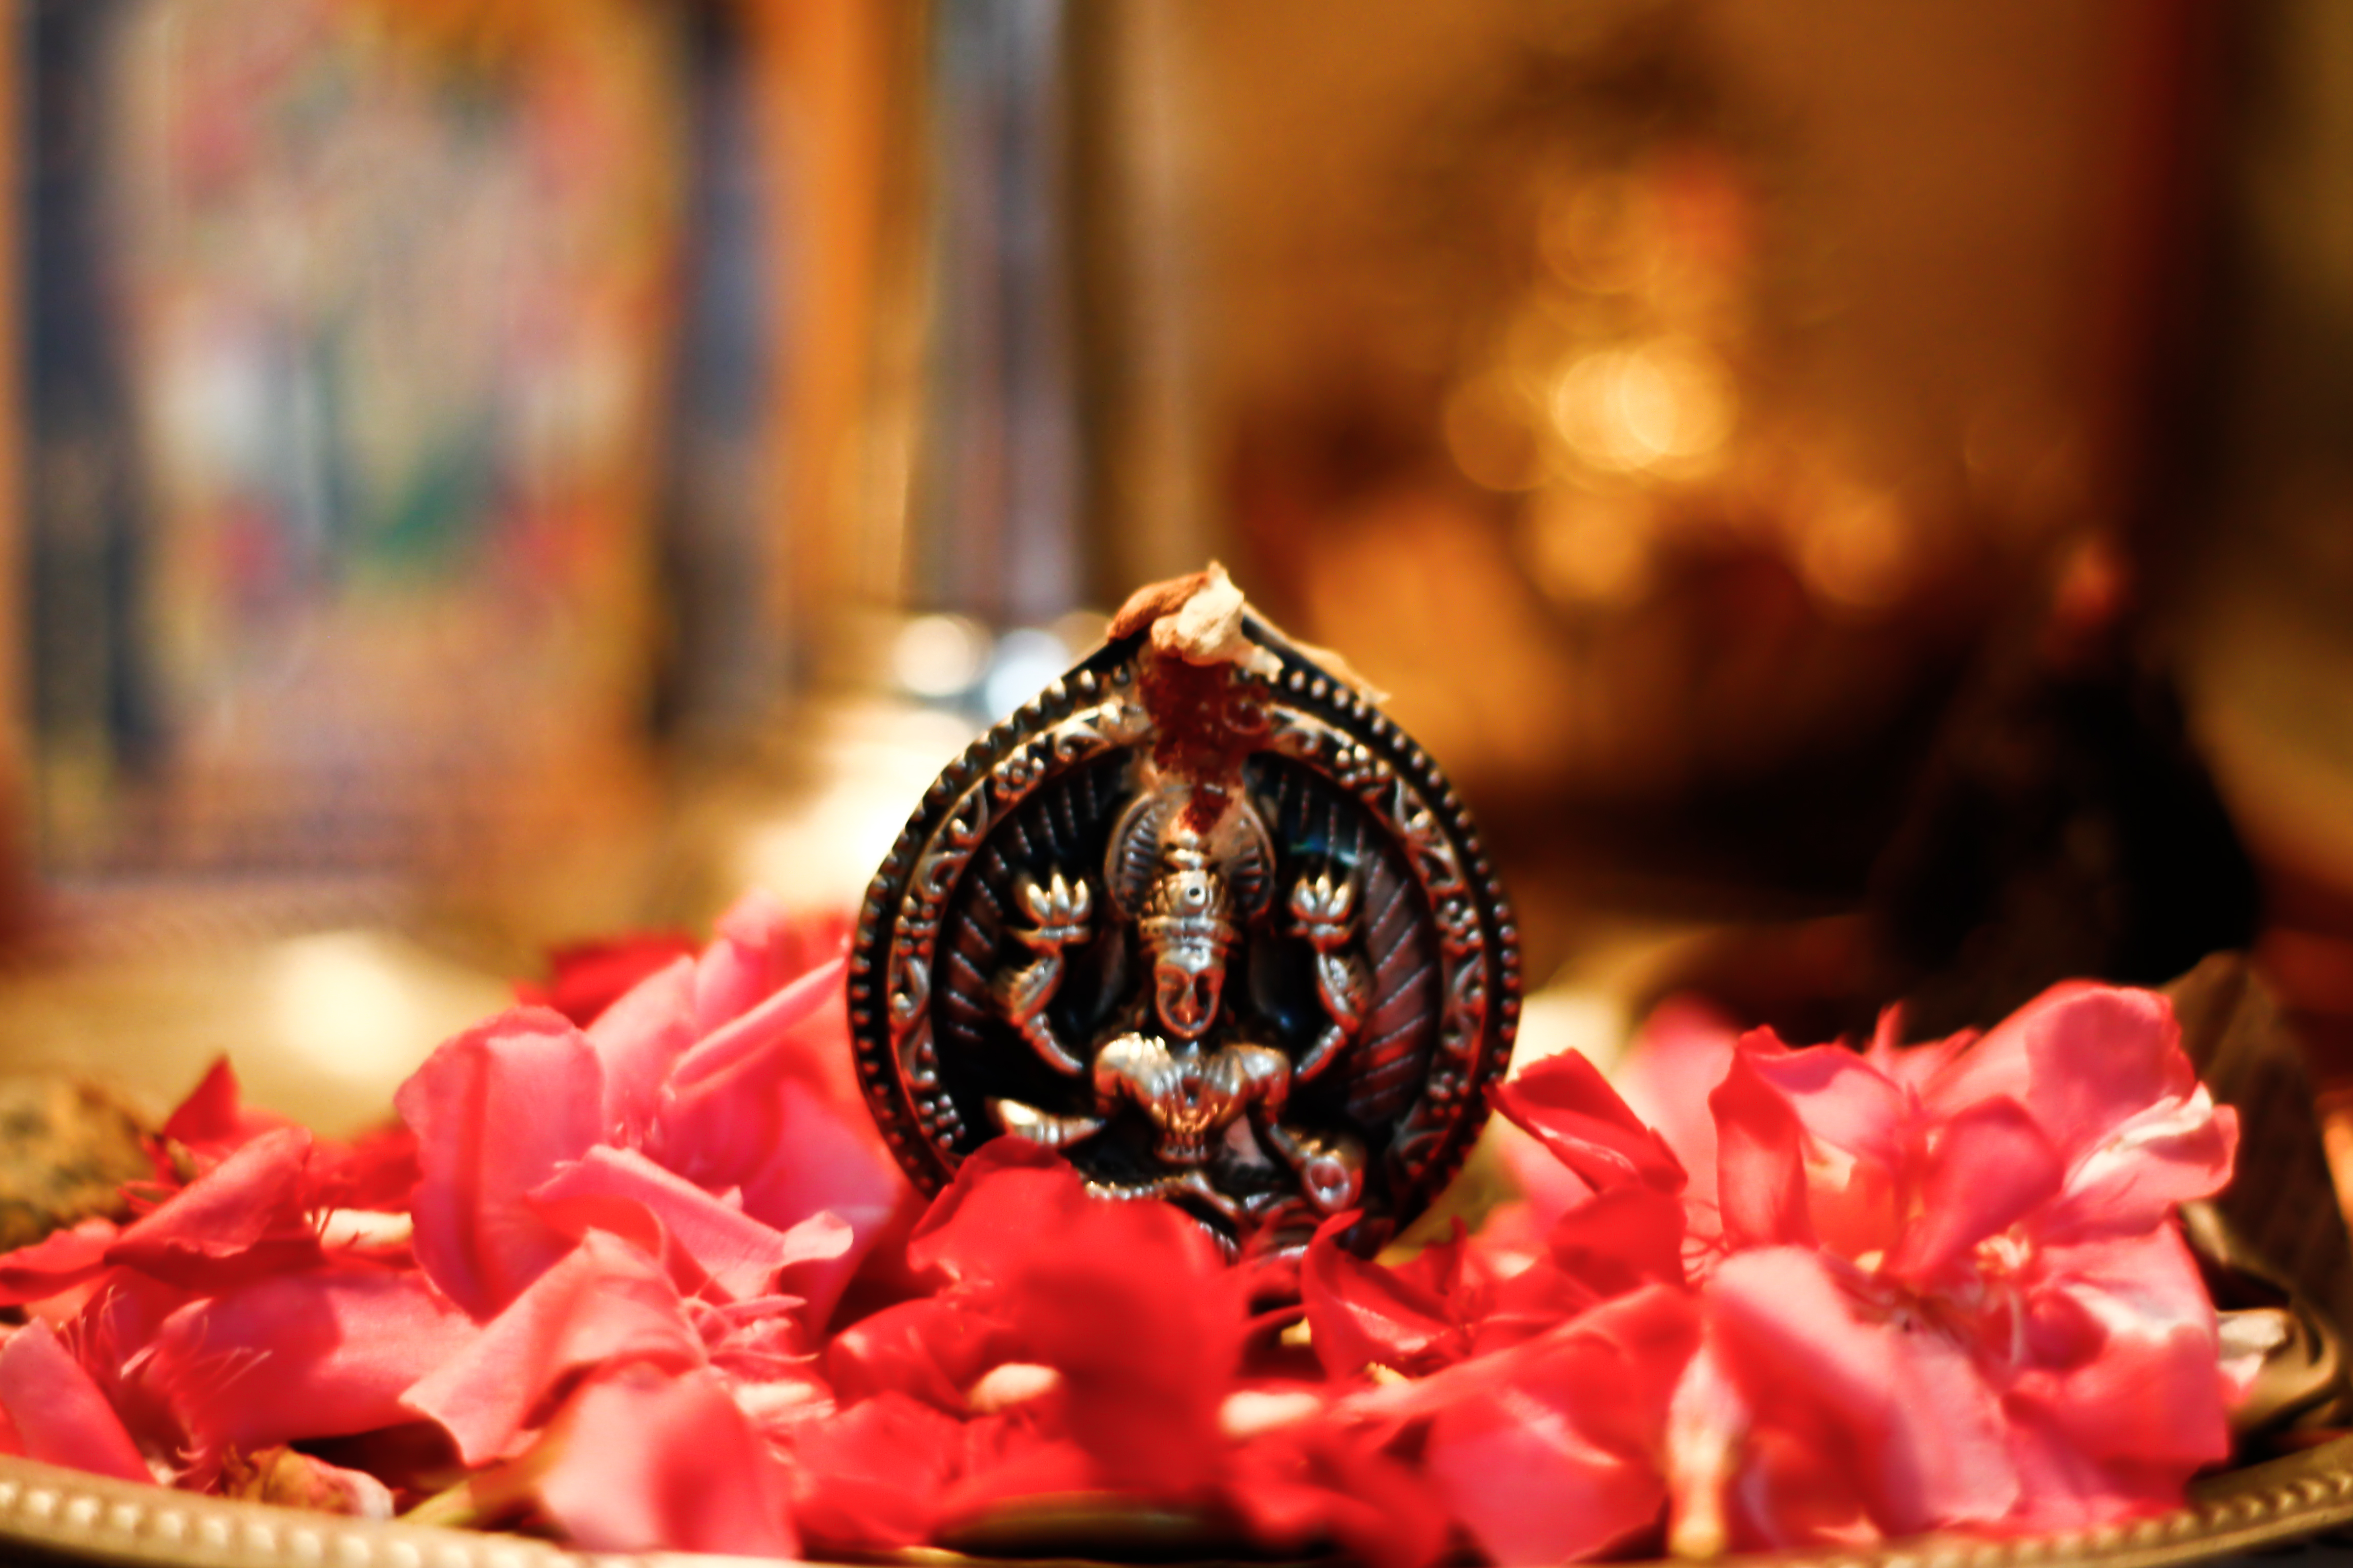 A copper idol of Goddess Lakshmi in midst of red flowers